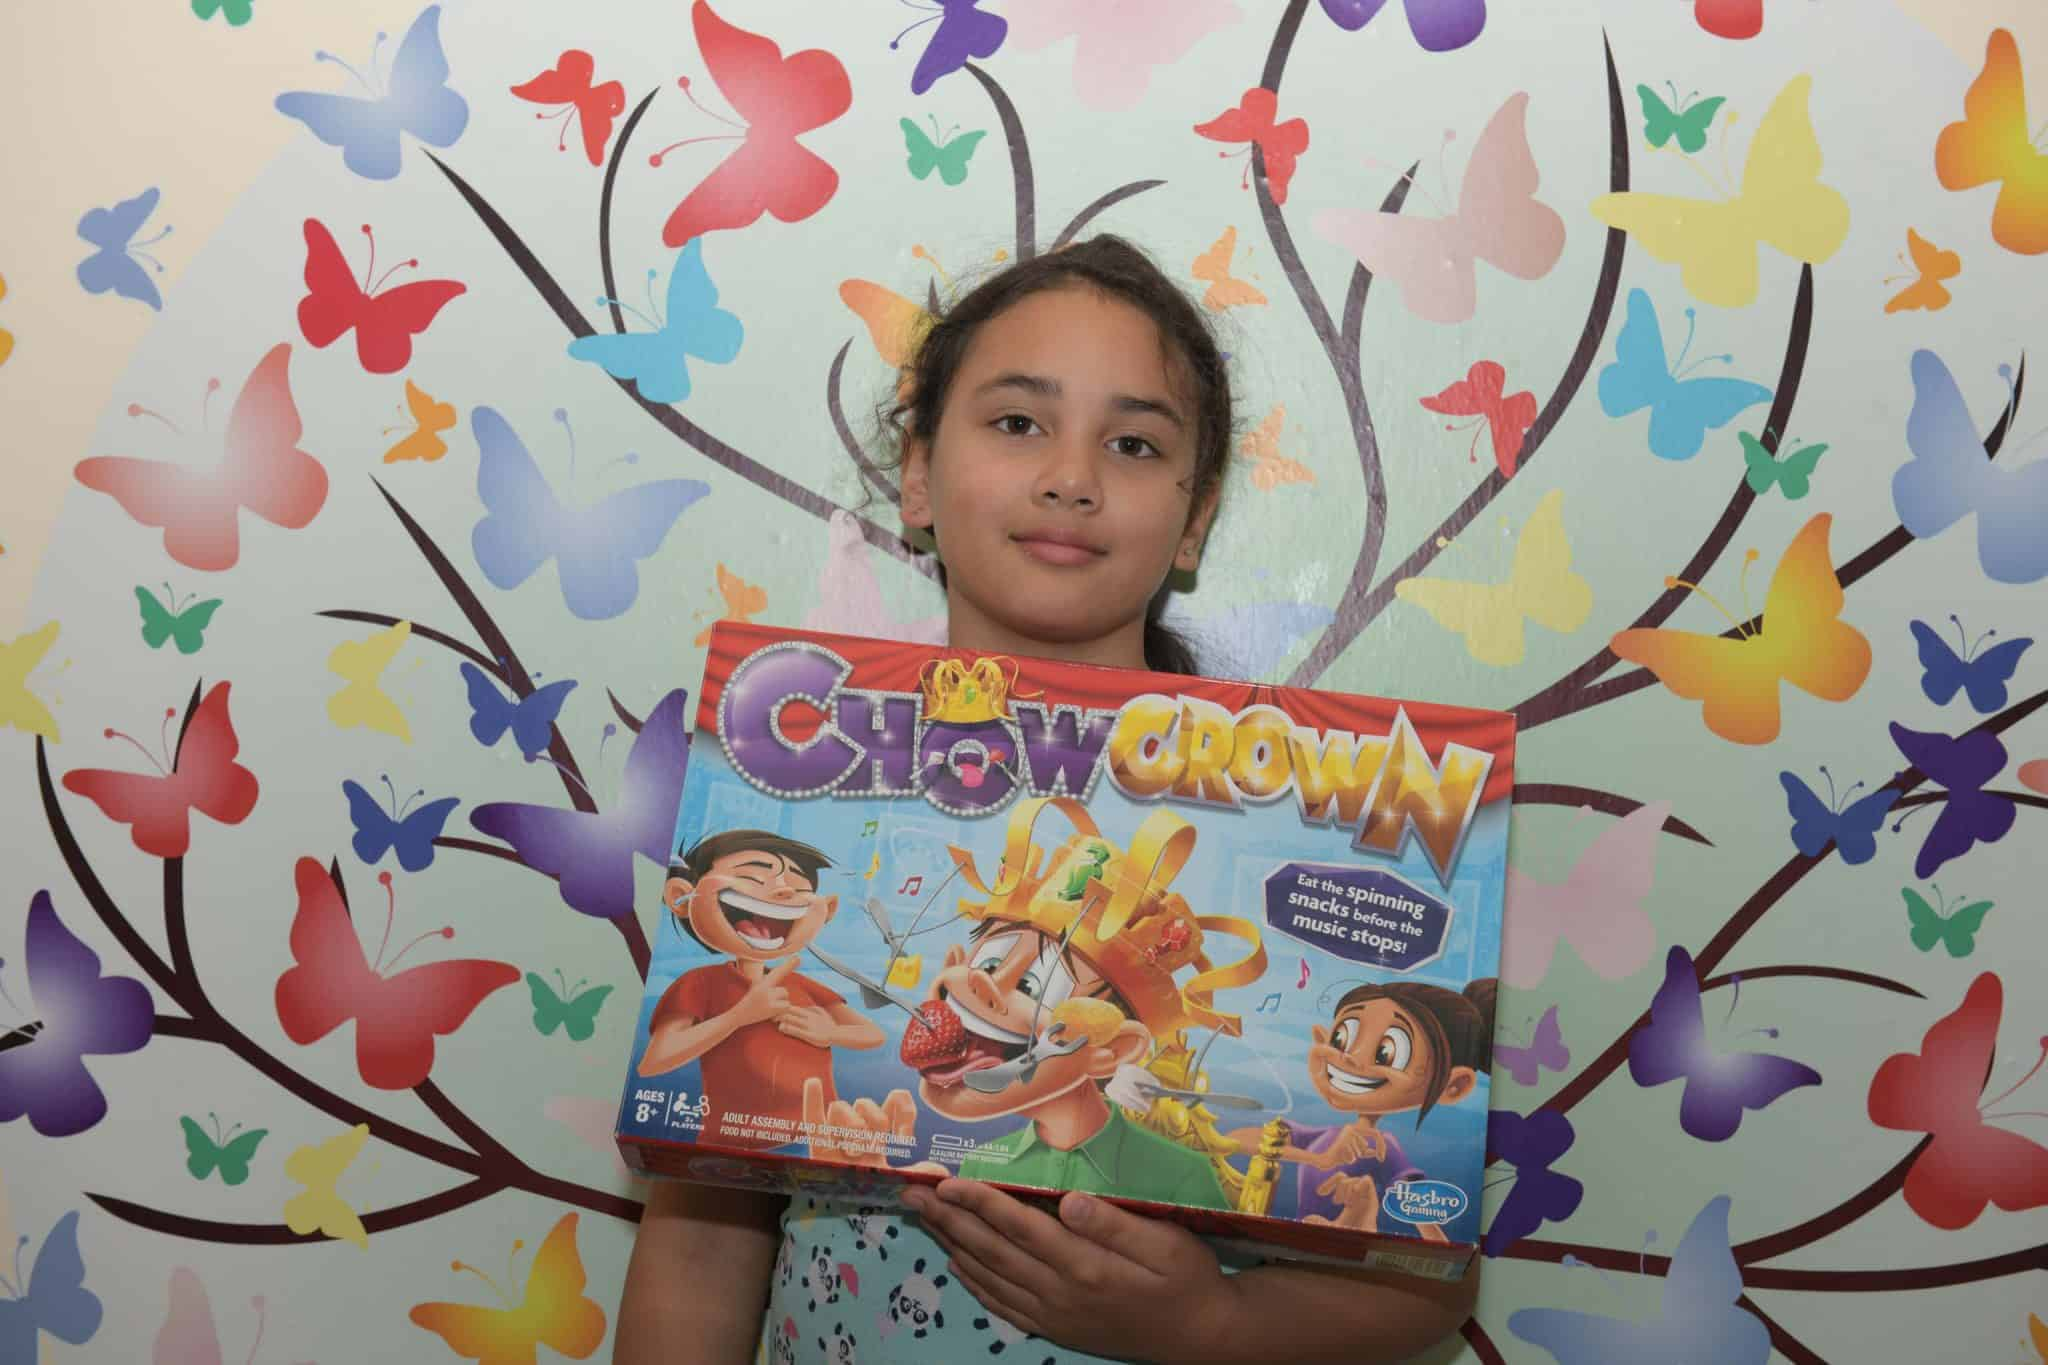 Hasbro Chown Crown Game A Review